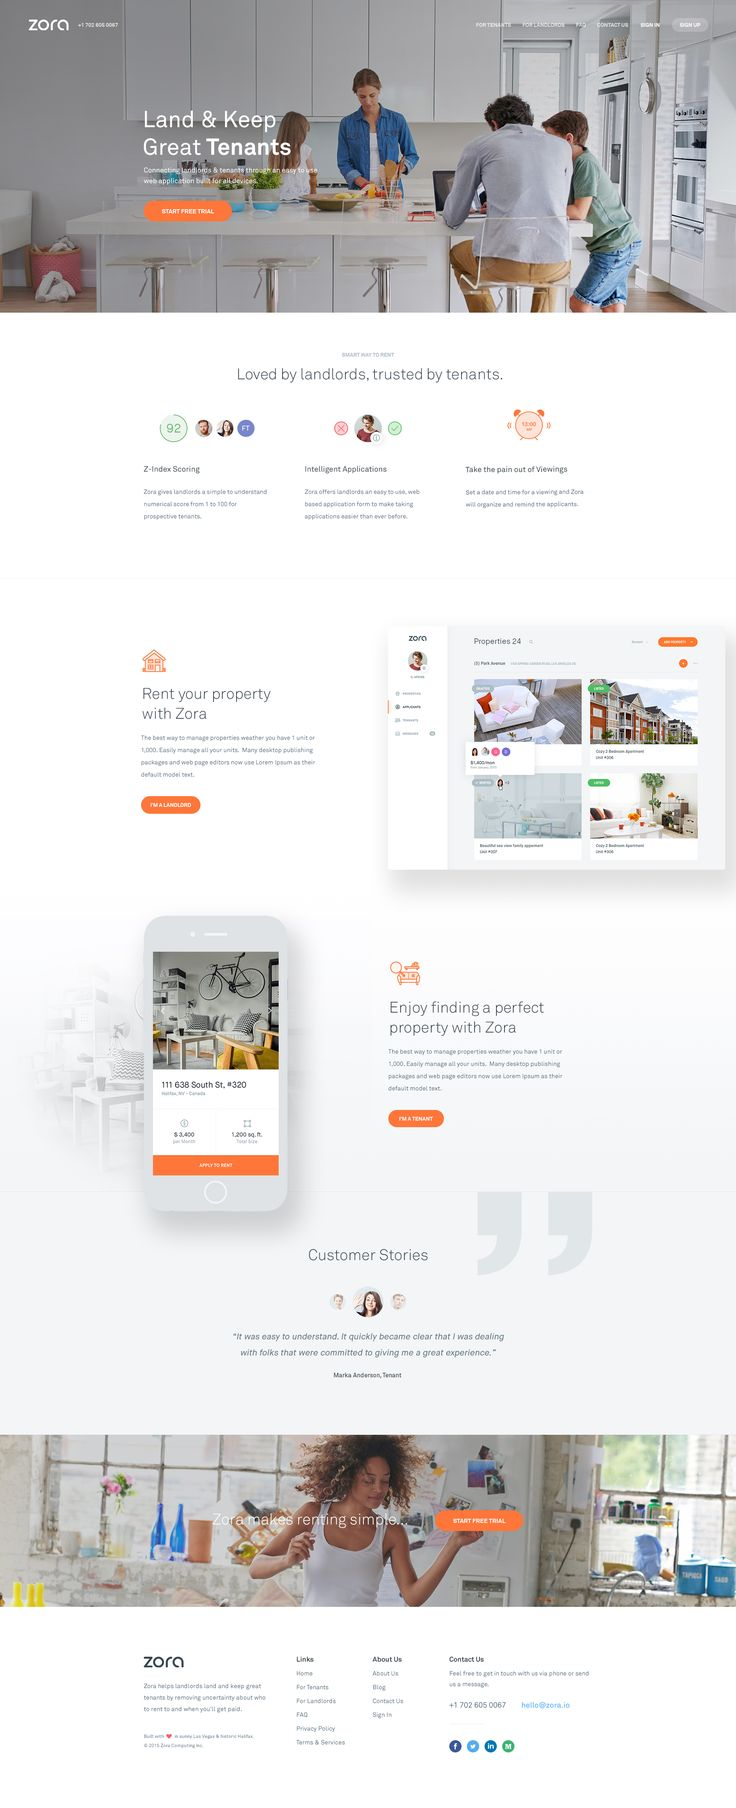 Dribbble - homepage-1.jpg by Balkan Brothers